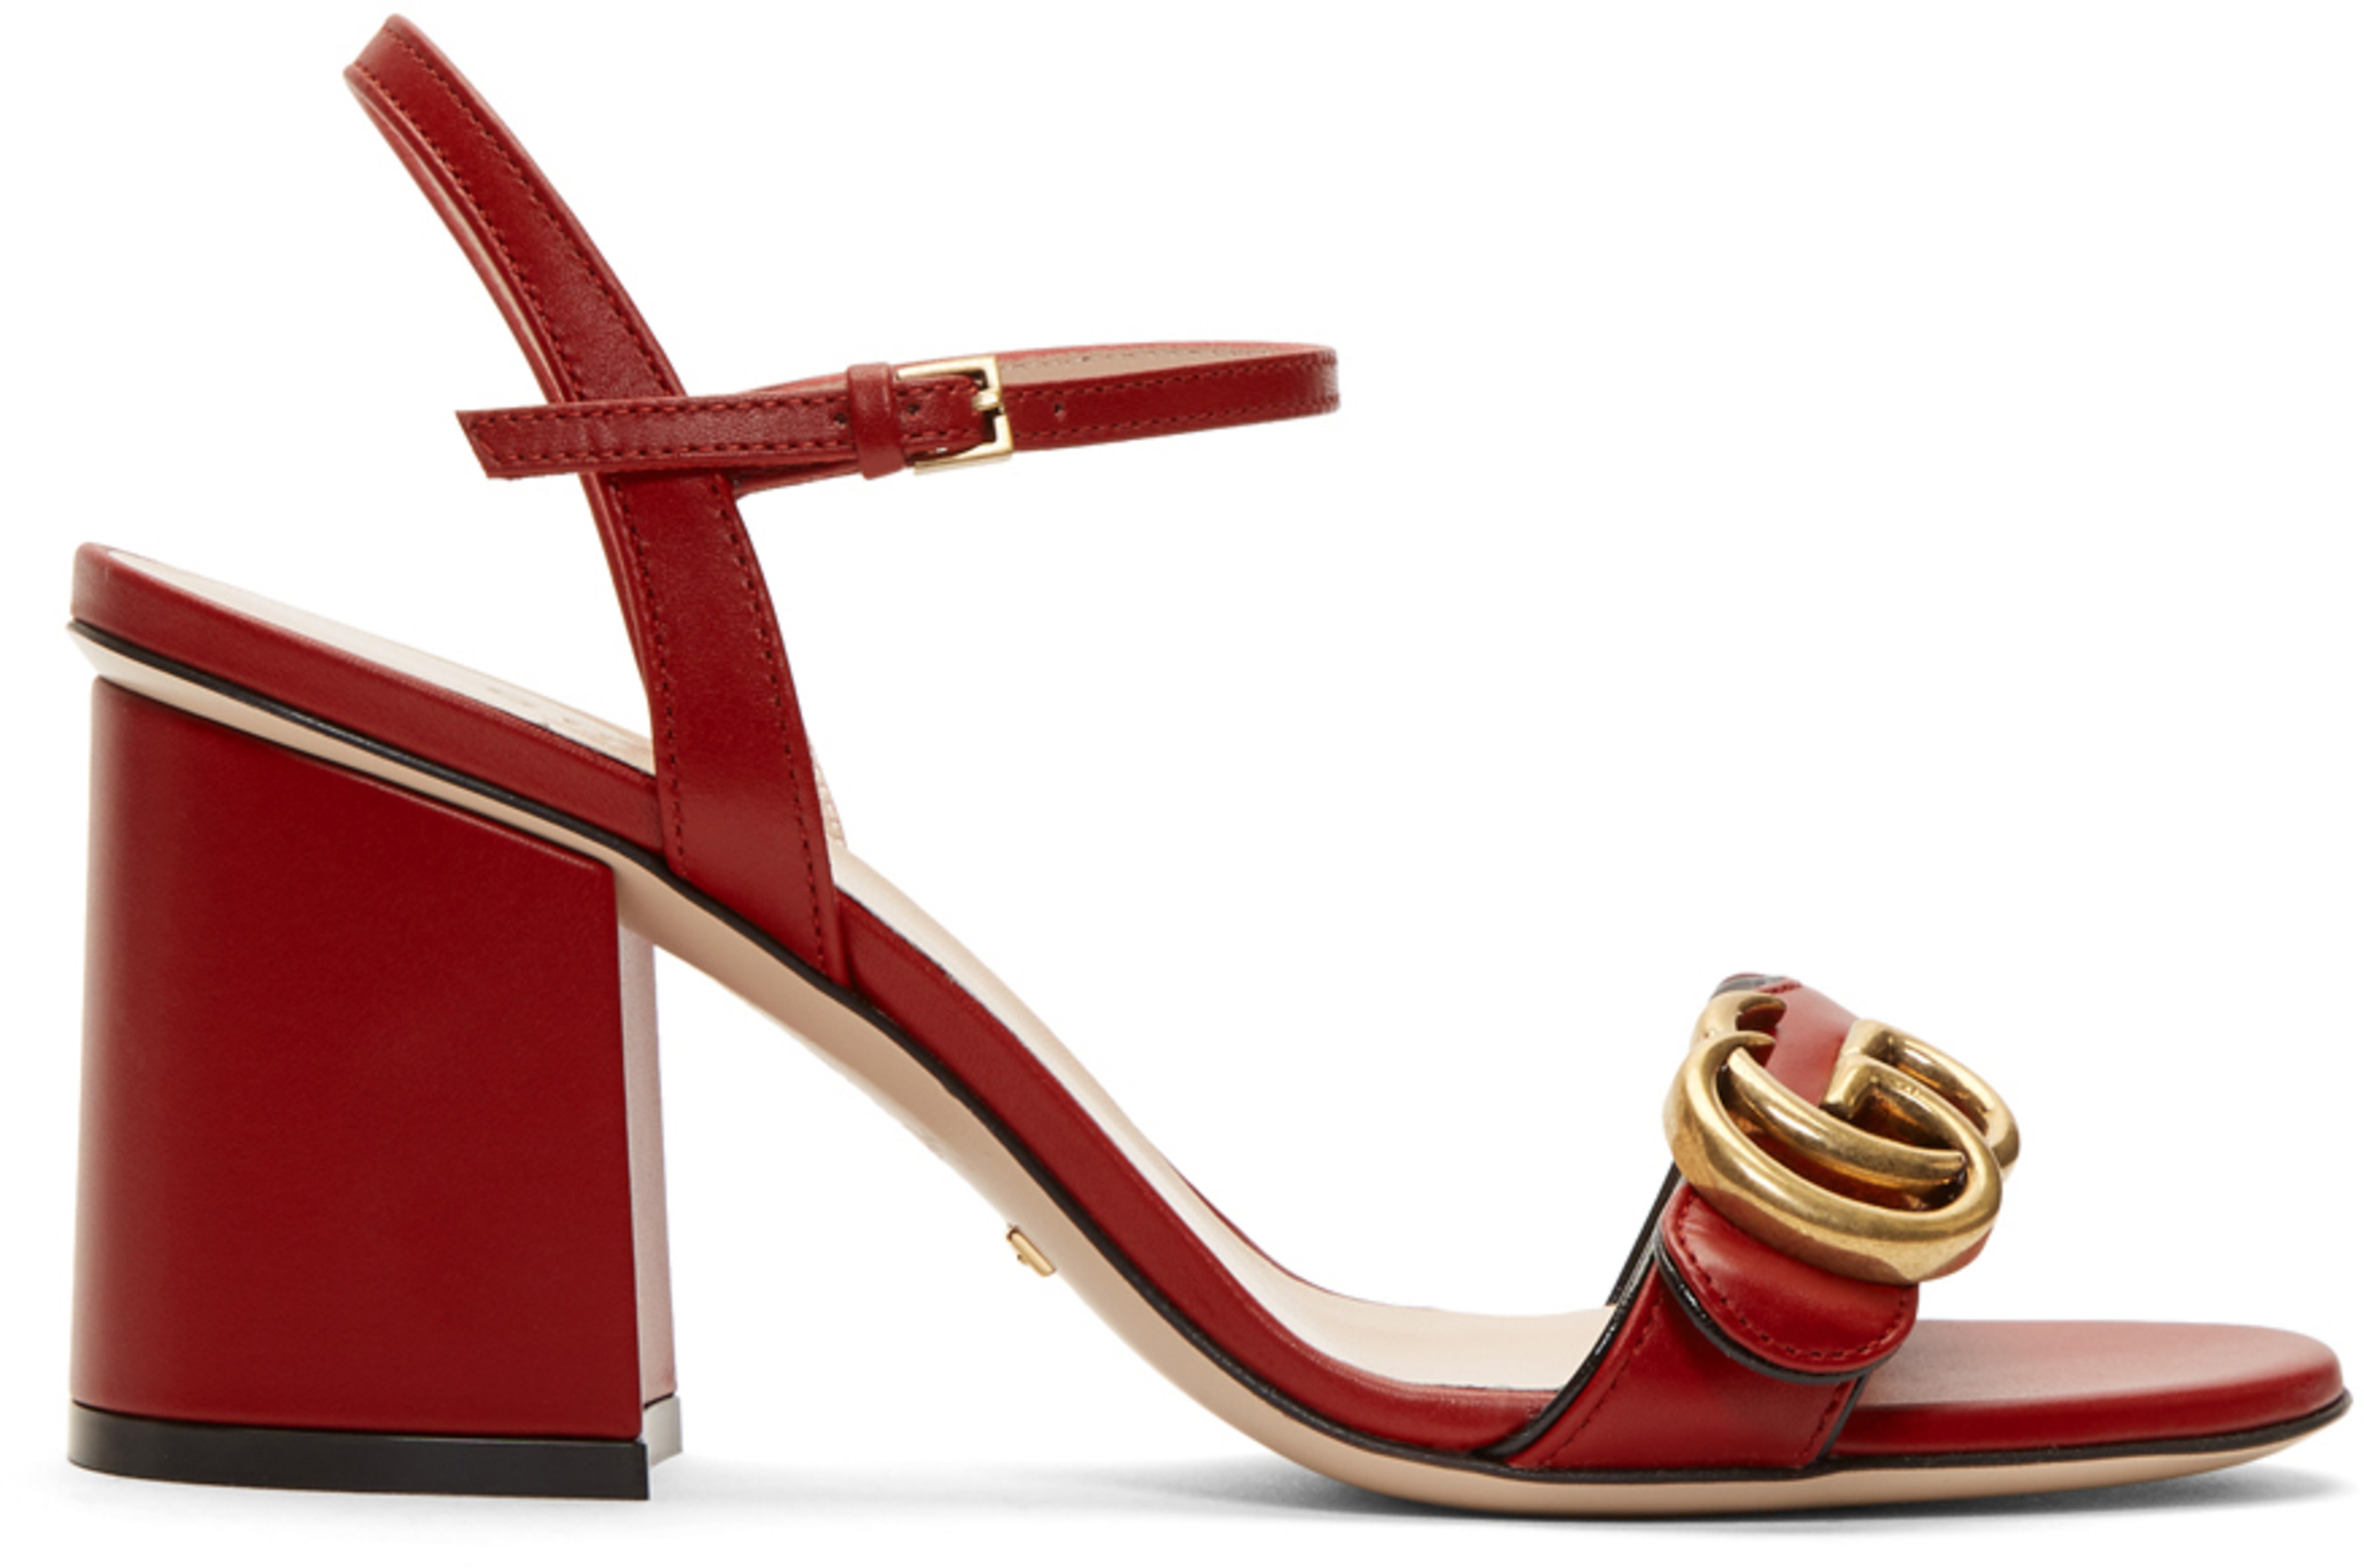 f5fa2b1d6 Gucci shoes for Women